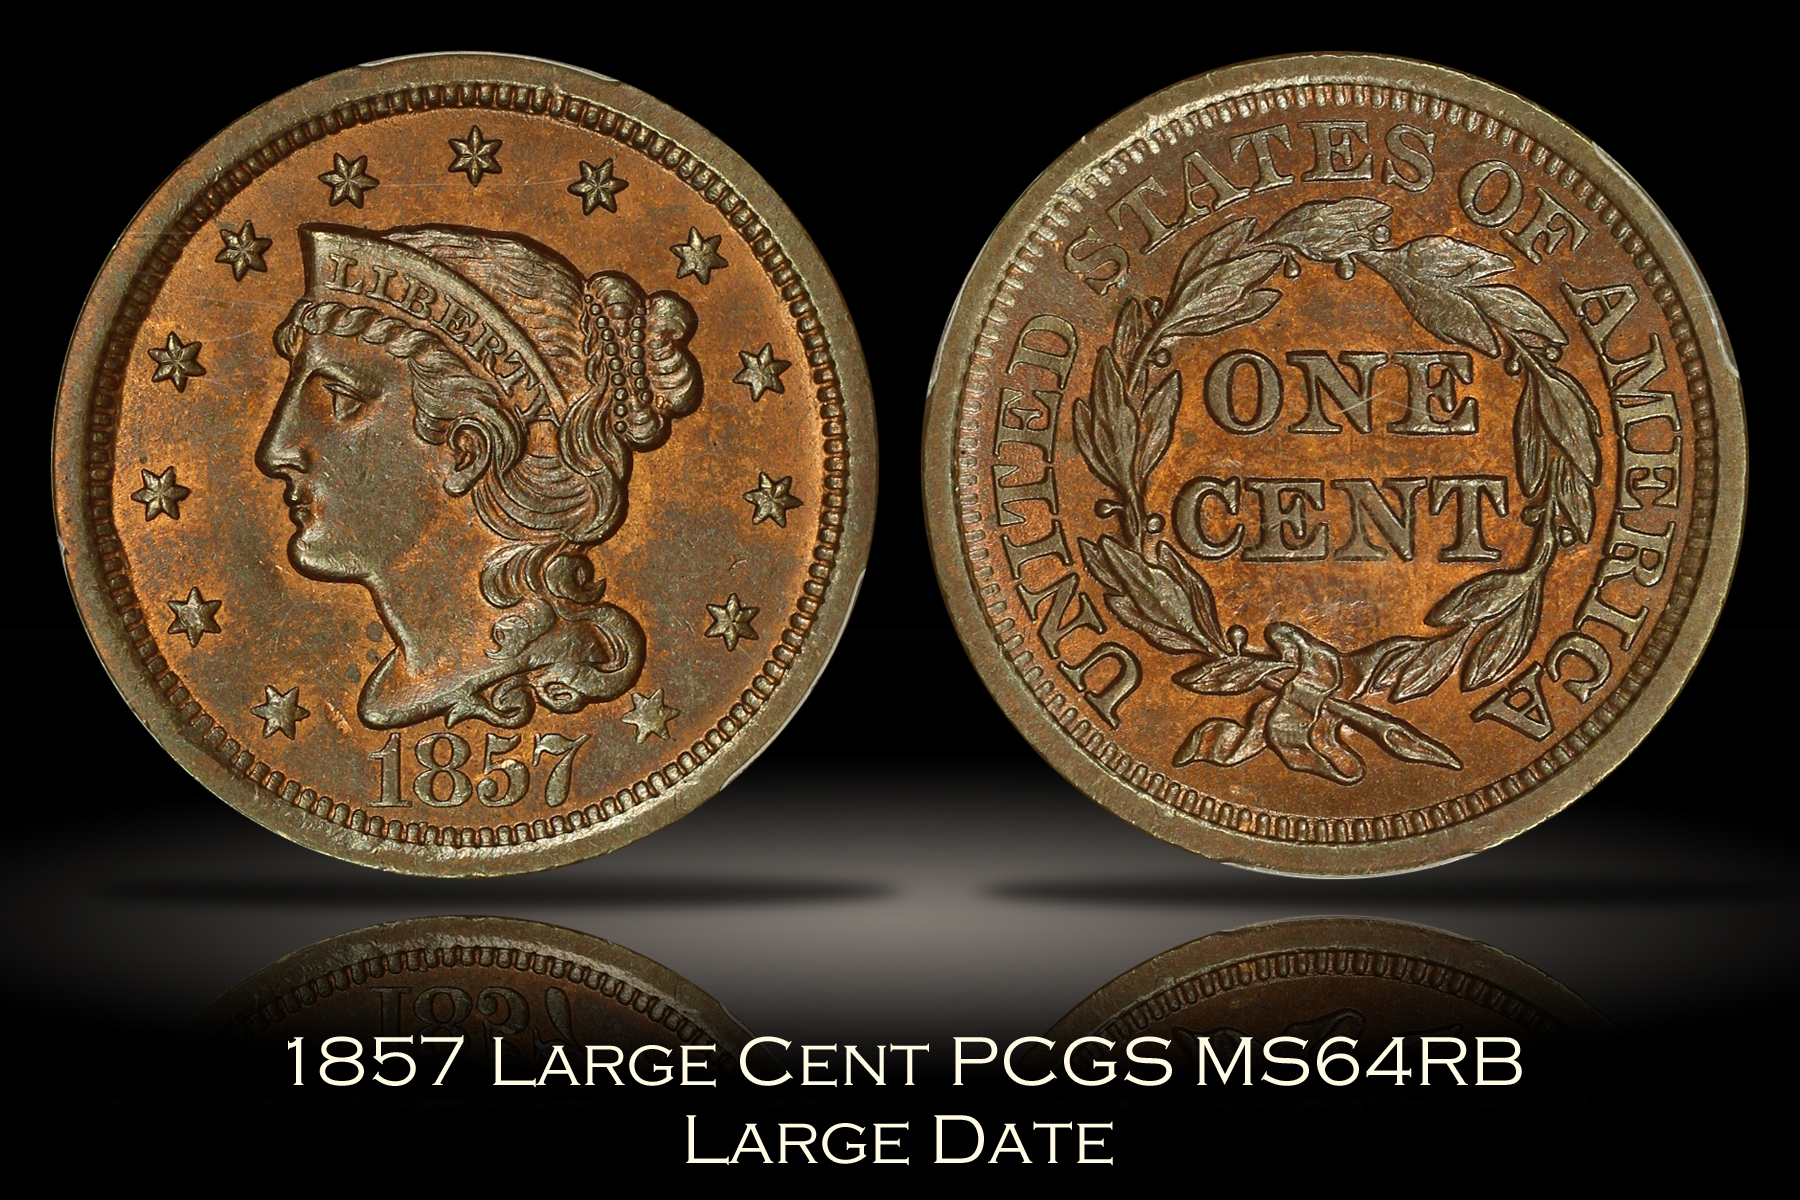 1857 Large Date Large Cent PCGS MS64RB